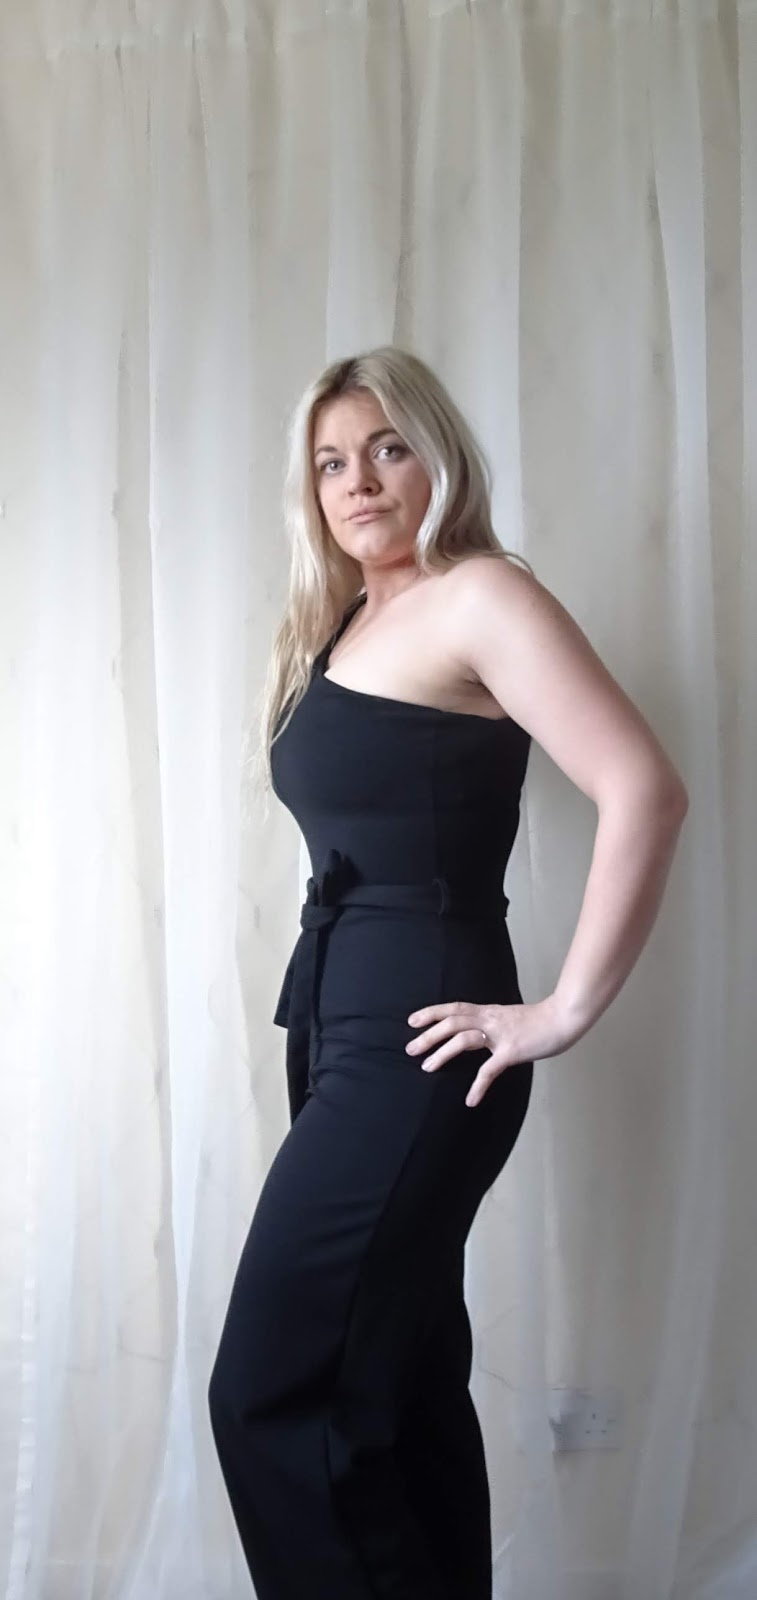 d1431051c Black Belted One Shoulder Jumpsuit - Evelyn £31.99 This is the gorgeous one-shoulder  jumpsuit in black. It comes in lots of colours. Mine is a size 10.